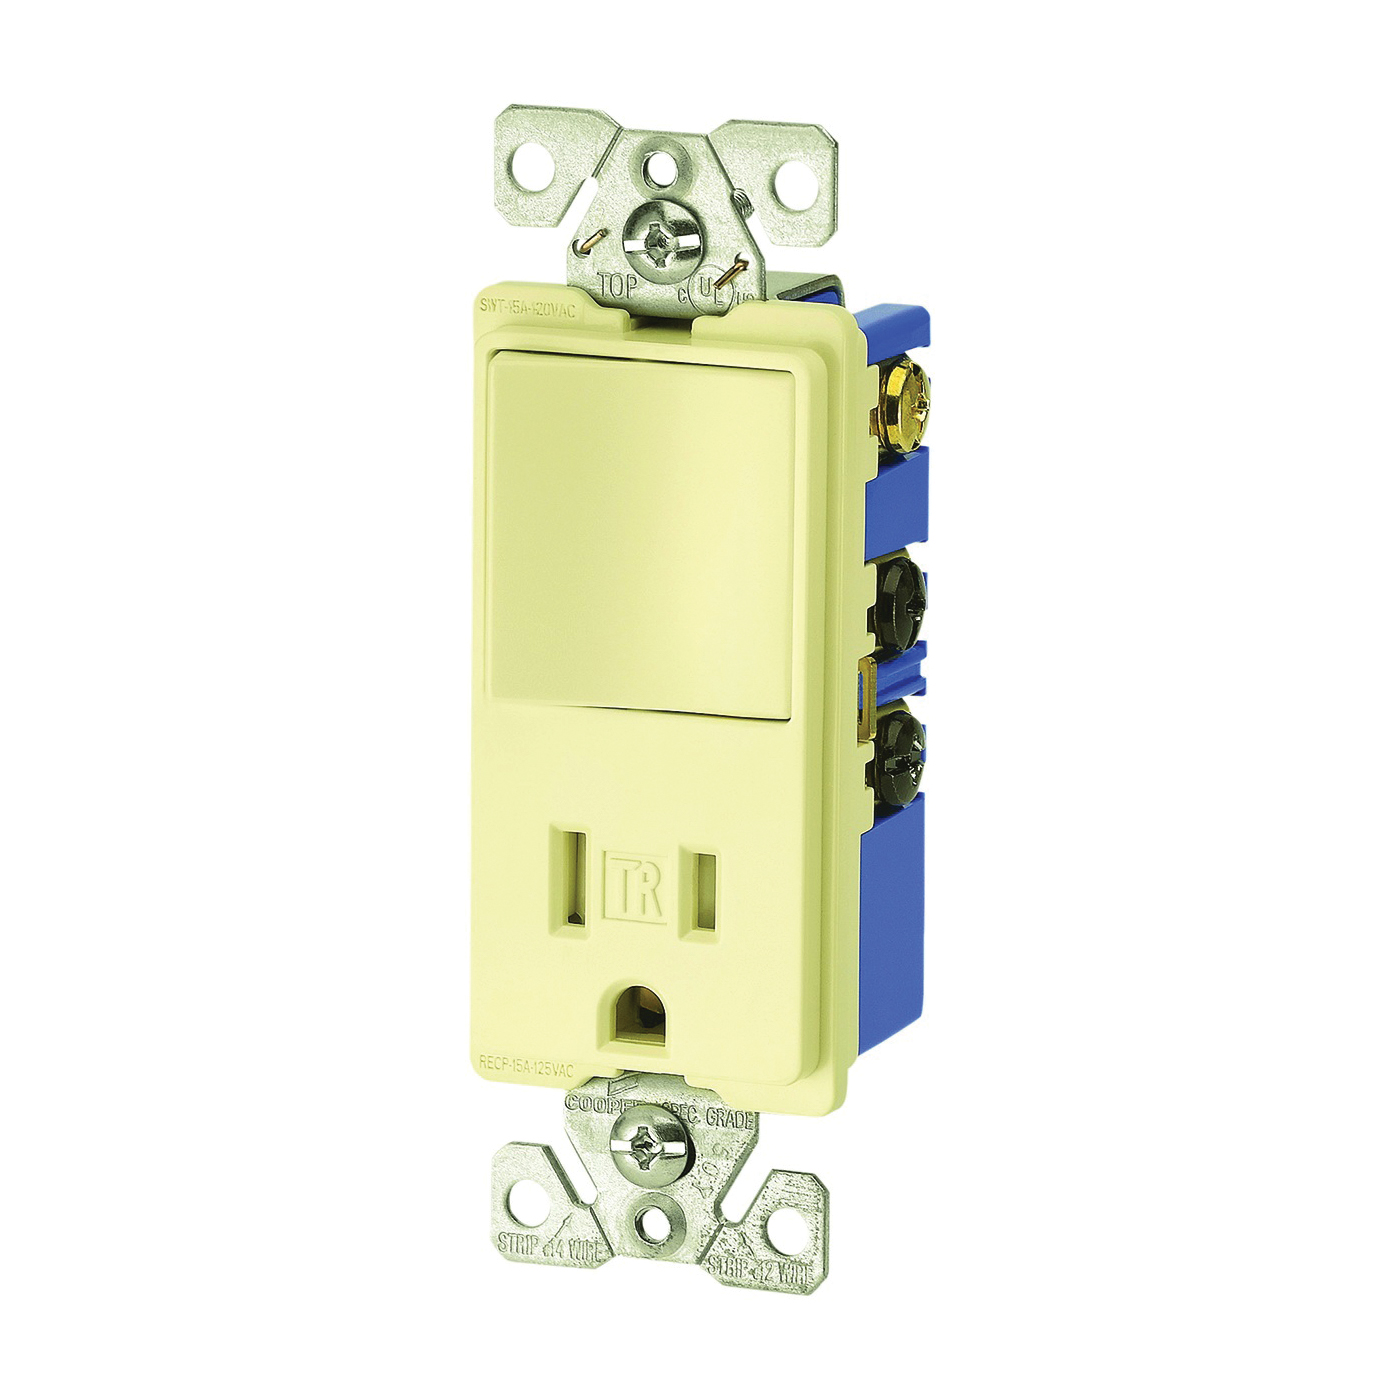 Picture of Eaton Cooper Wiring TR7730V Combination Switch/Receptacle, 1-Pole, 15 A, 120/277 V, Ivory